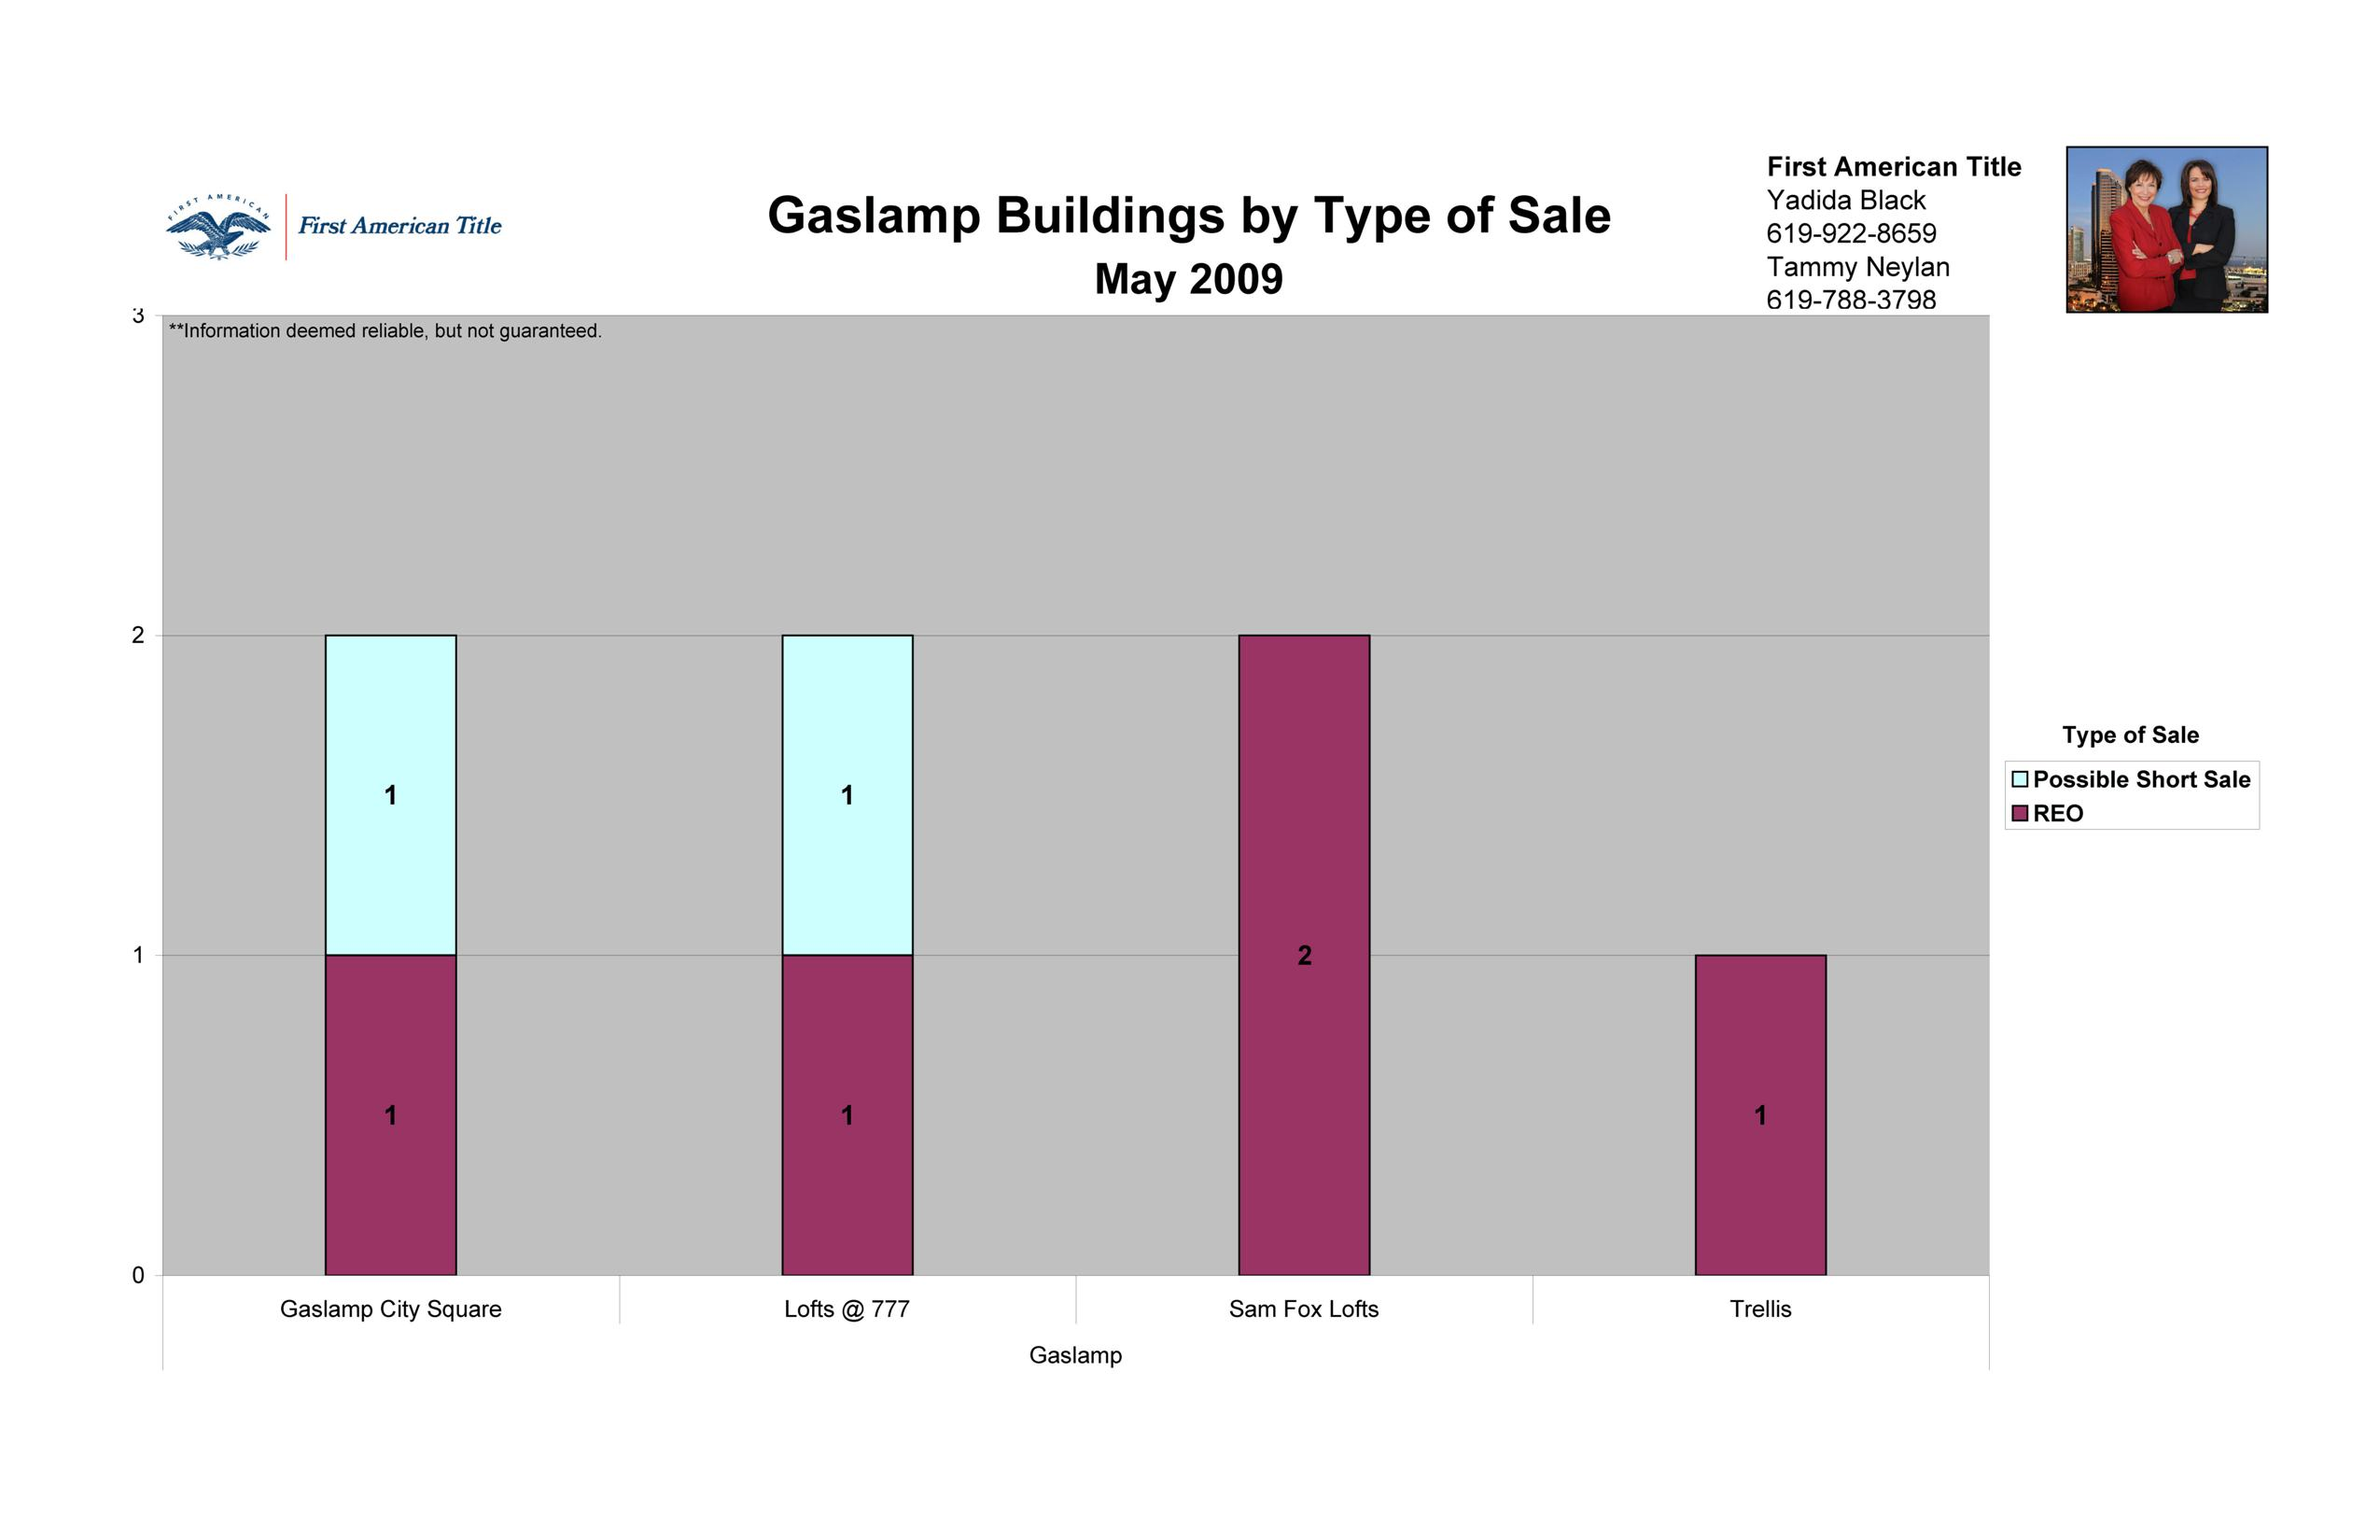 The Gaslamp District in Downtown San Diego 92101 by Type of Sale